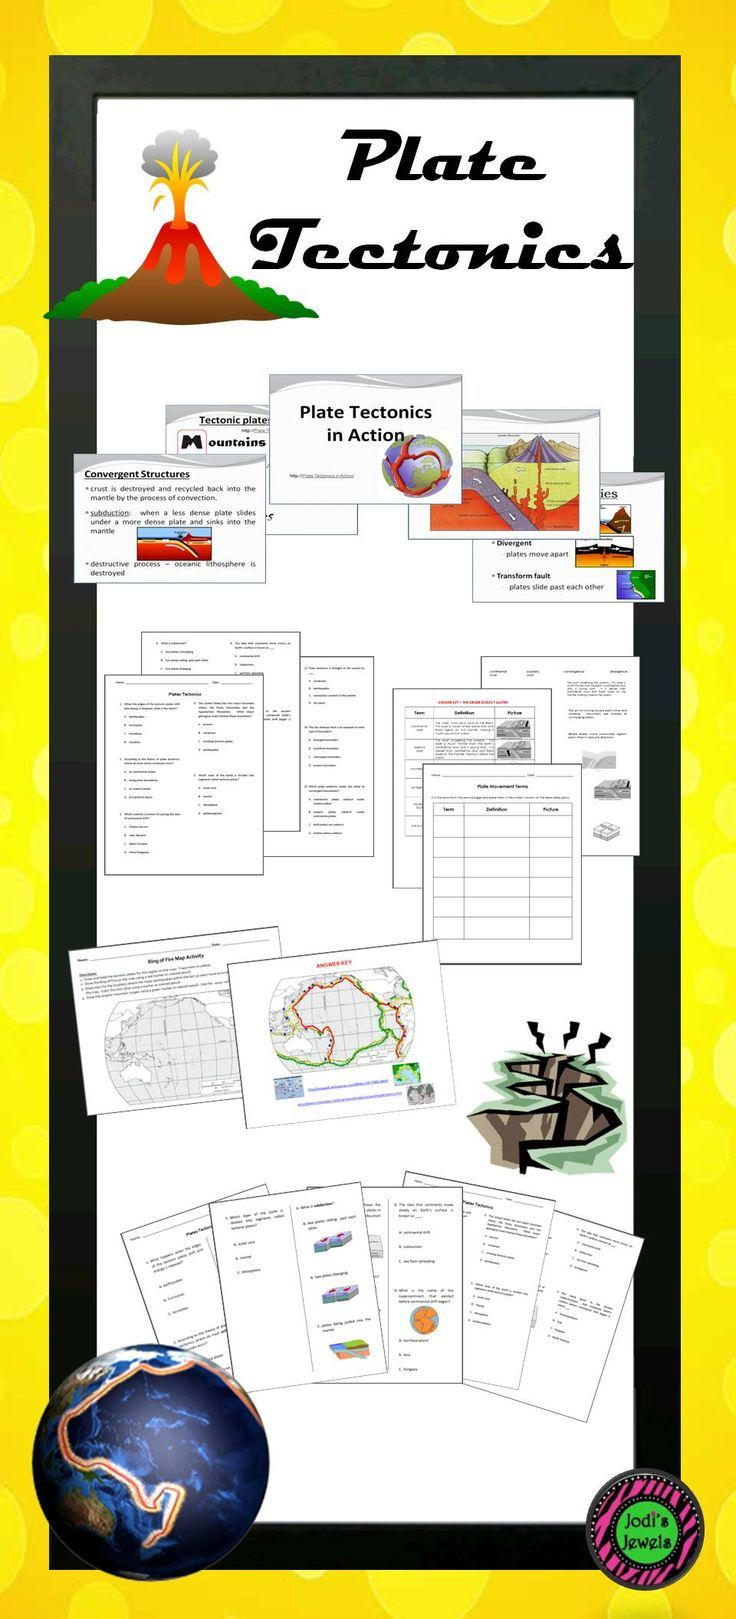 Plate Tectonic Lesson Activities Including Maps Quizzes Tests Workshee Elementary Science Activities Elementary School Science Middle School Science Teacher